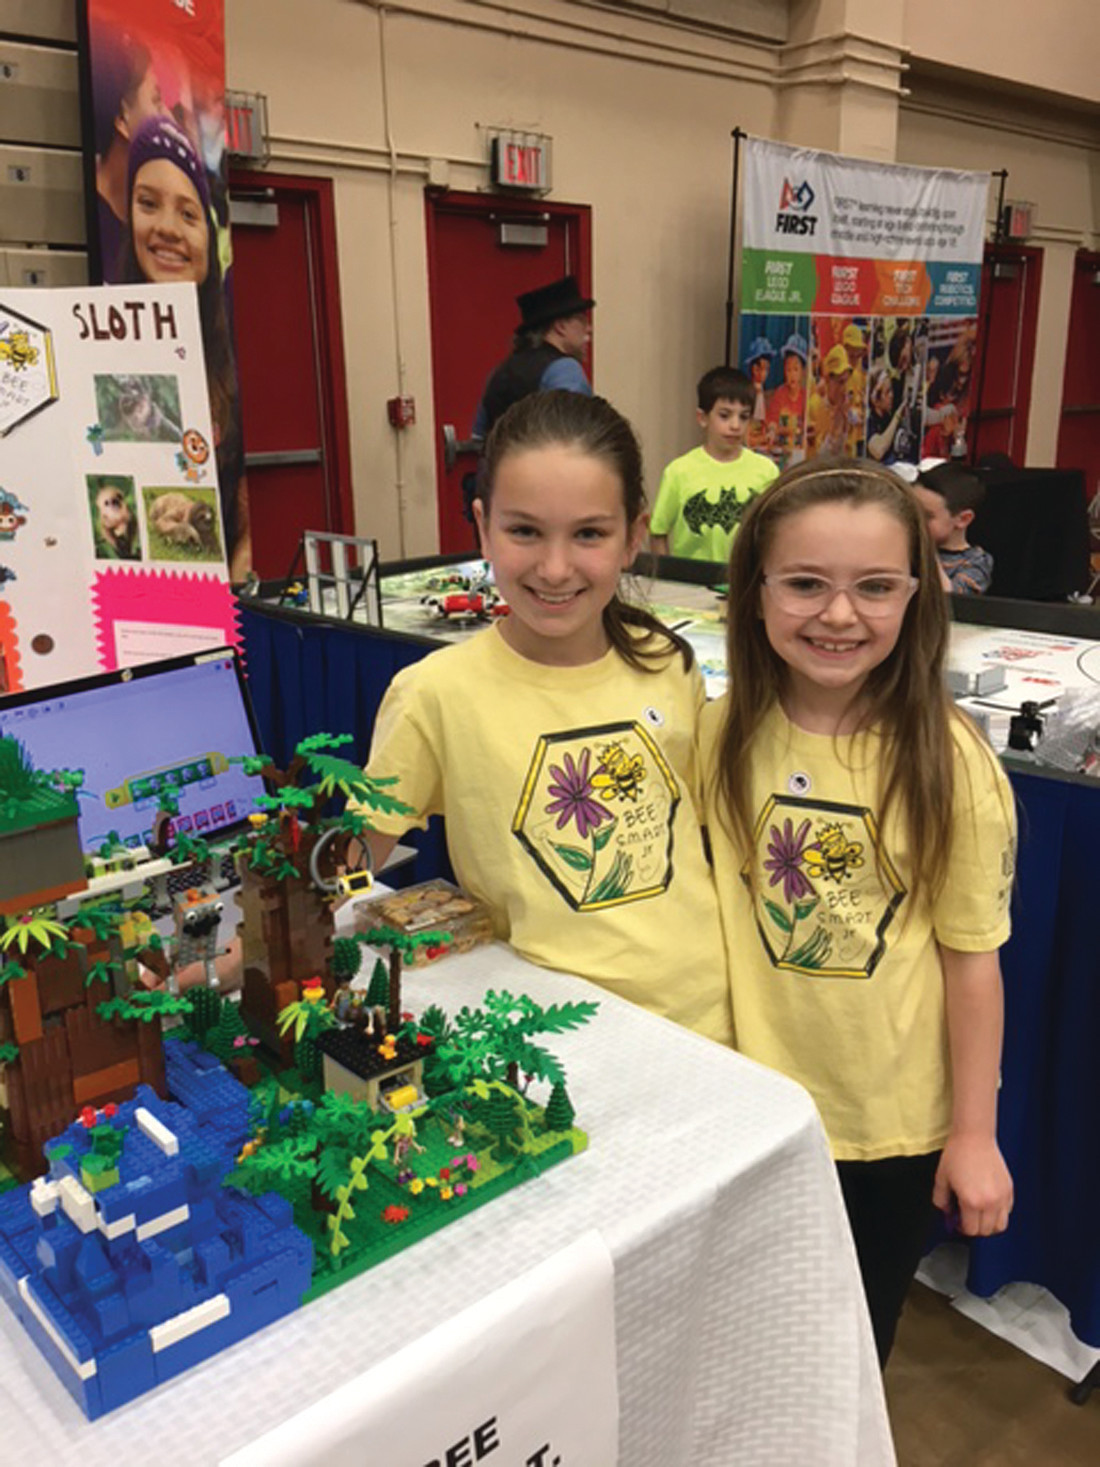 THEIR CREATION: Third graders Madison Medeiros (left) and Aurora Christiansen proudly display their legs robotics project at Sunday's Robot Block Party.